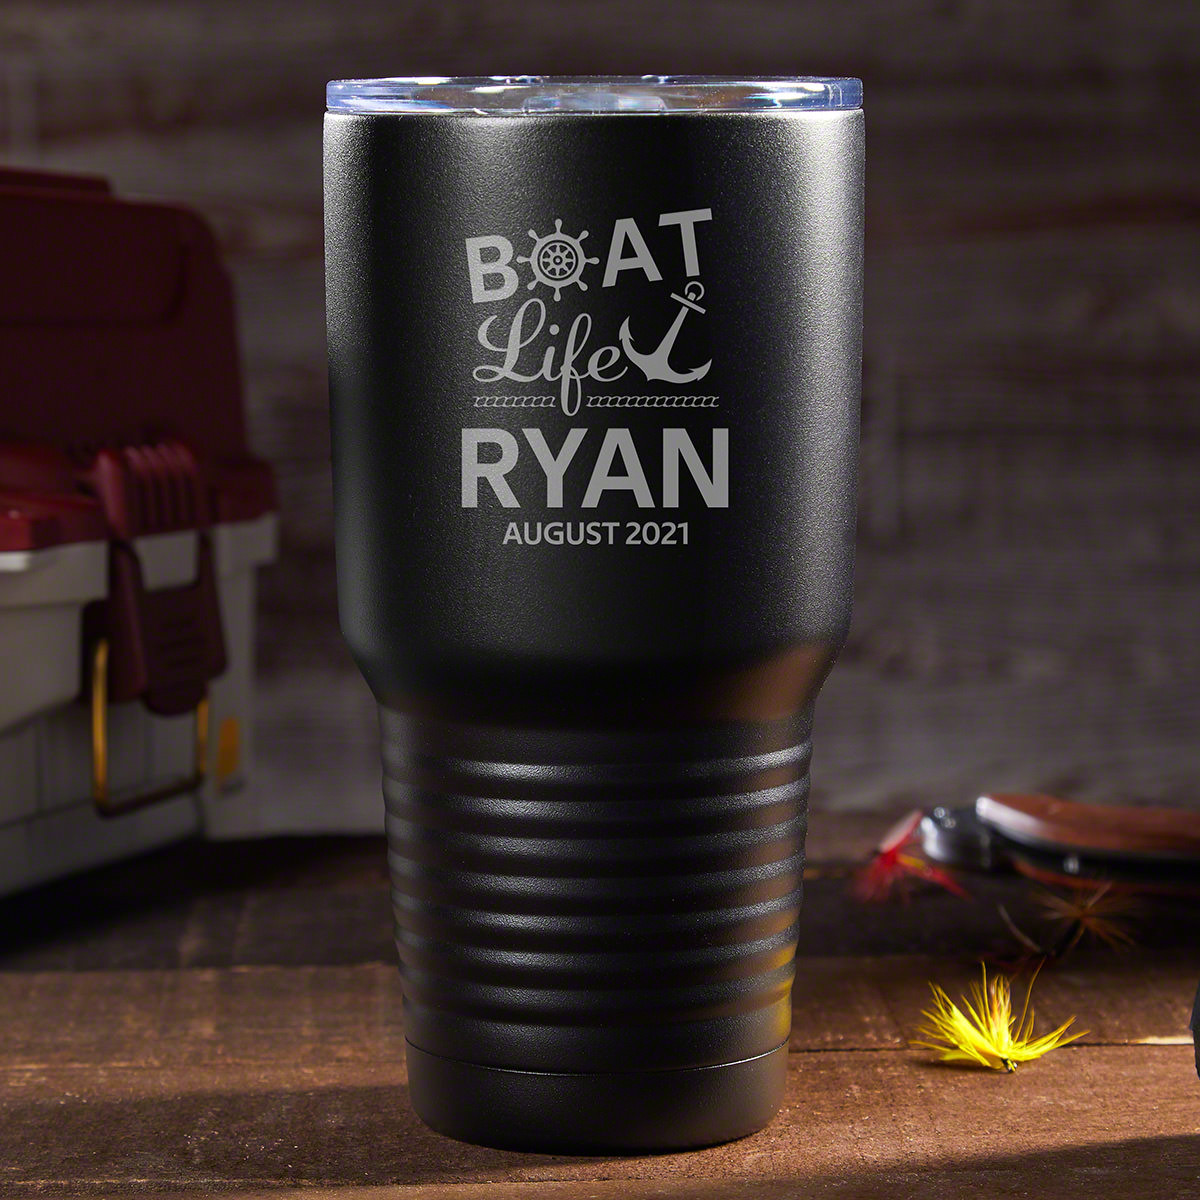 Nothing's better than relaxing on your boat, enjoying a nice cold beverage. Ensure that it stays cold with this personalized stainless steel tumbler that will keep your drink frosty cold when you're out on the water, similar to the Yeti-style tumblers #best